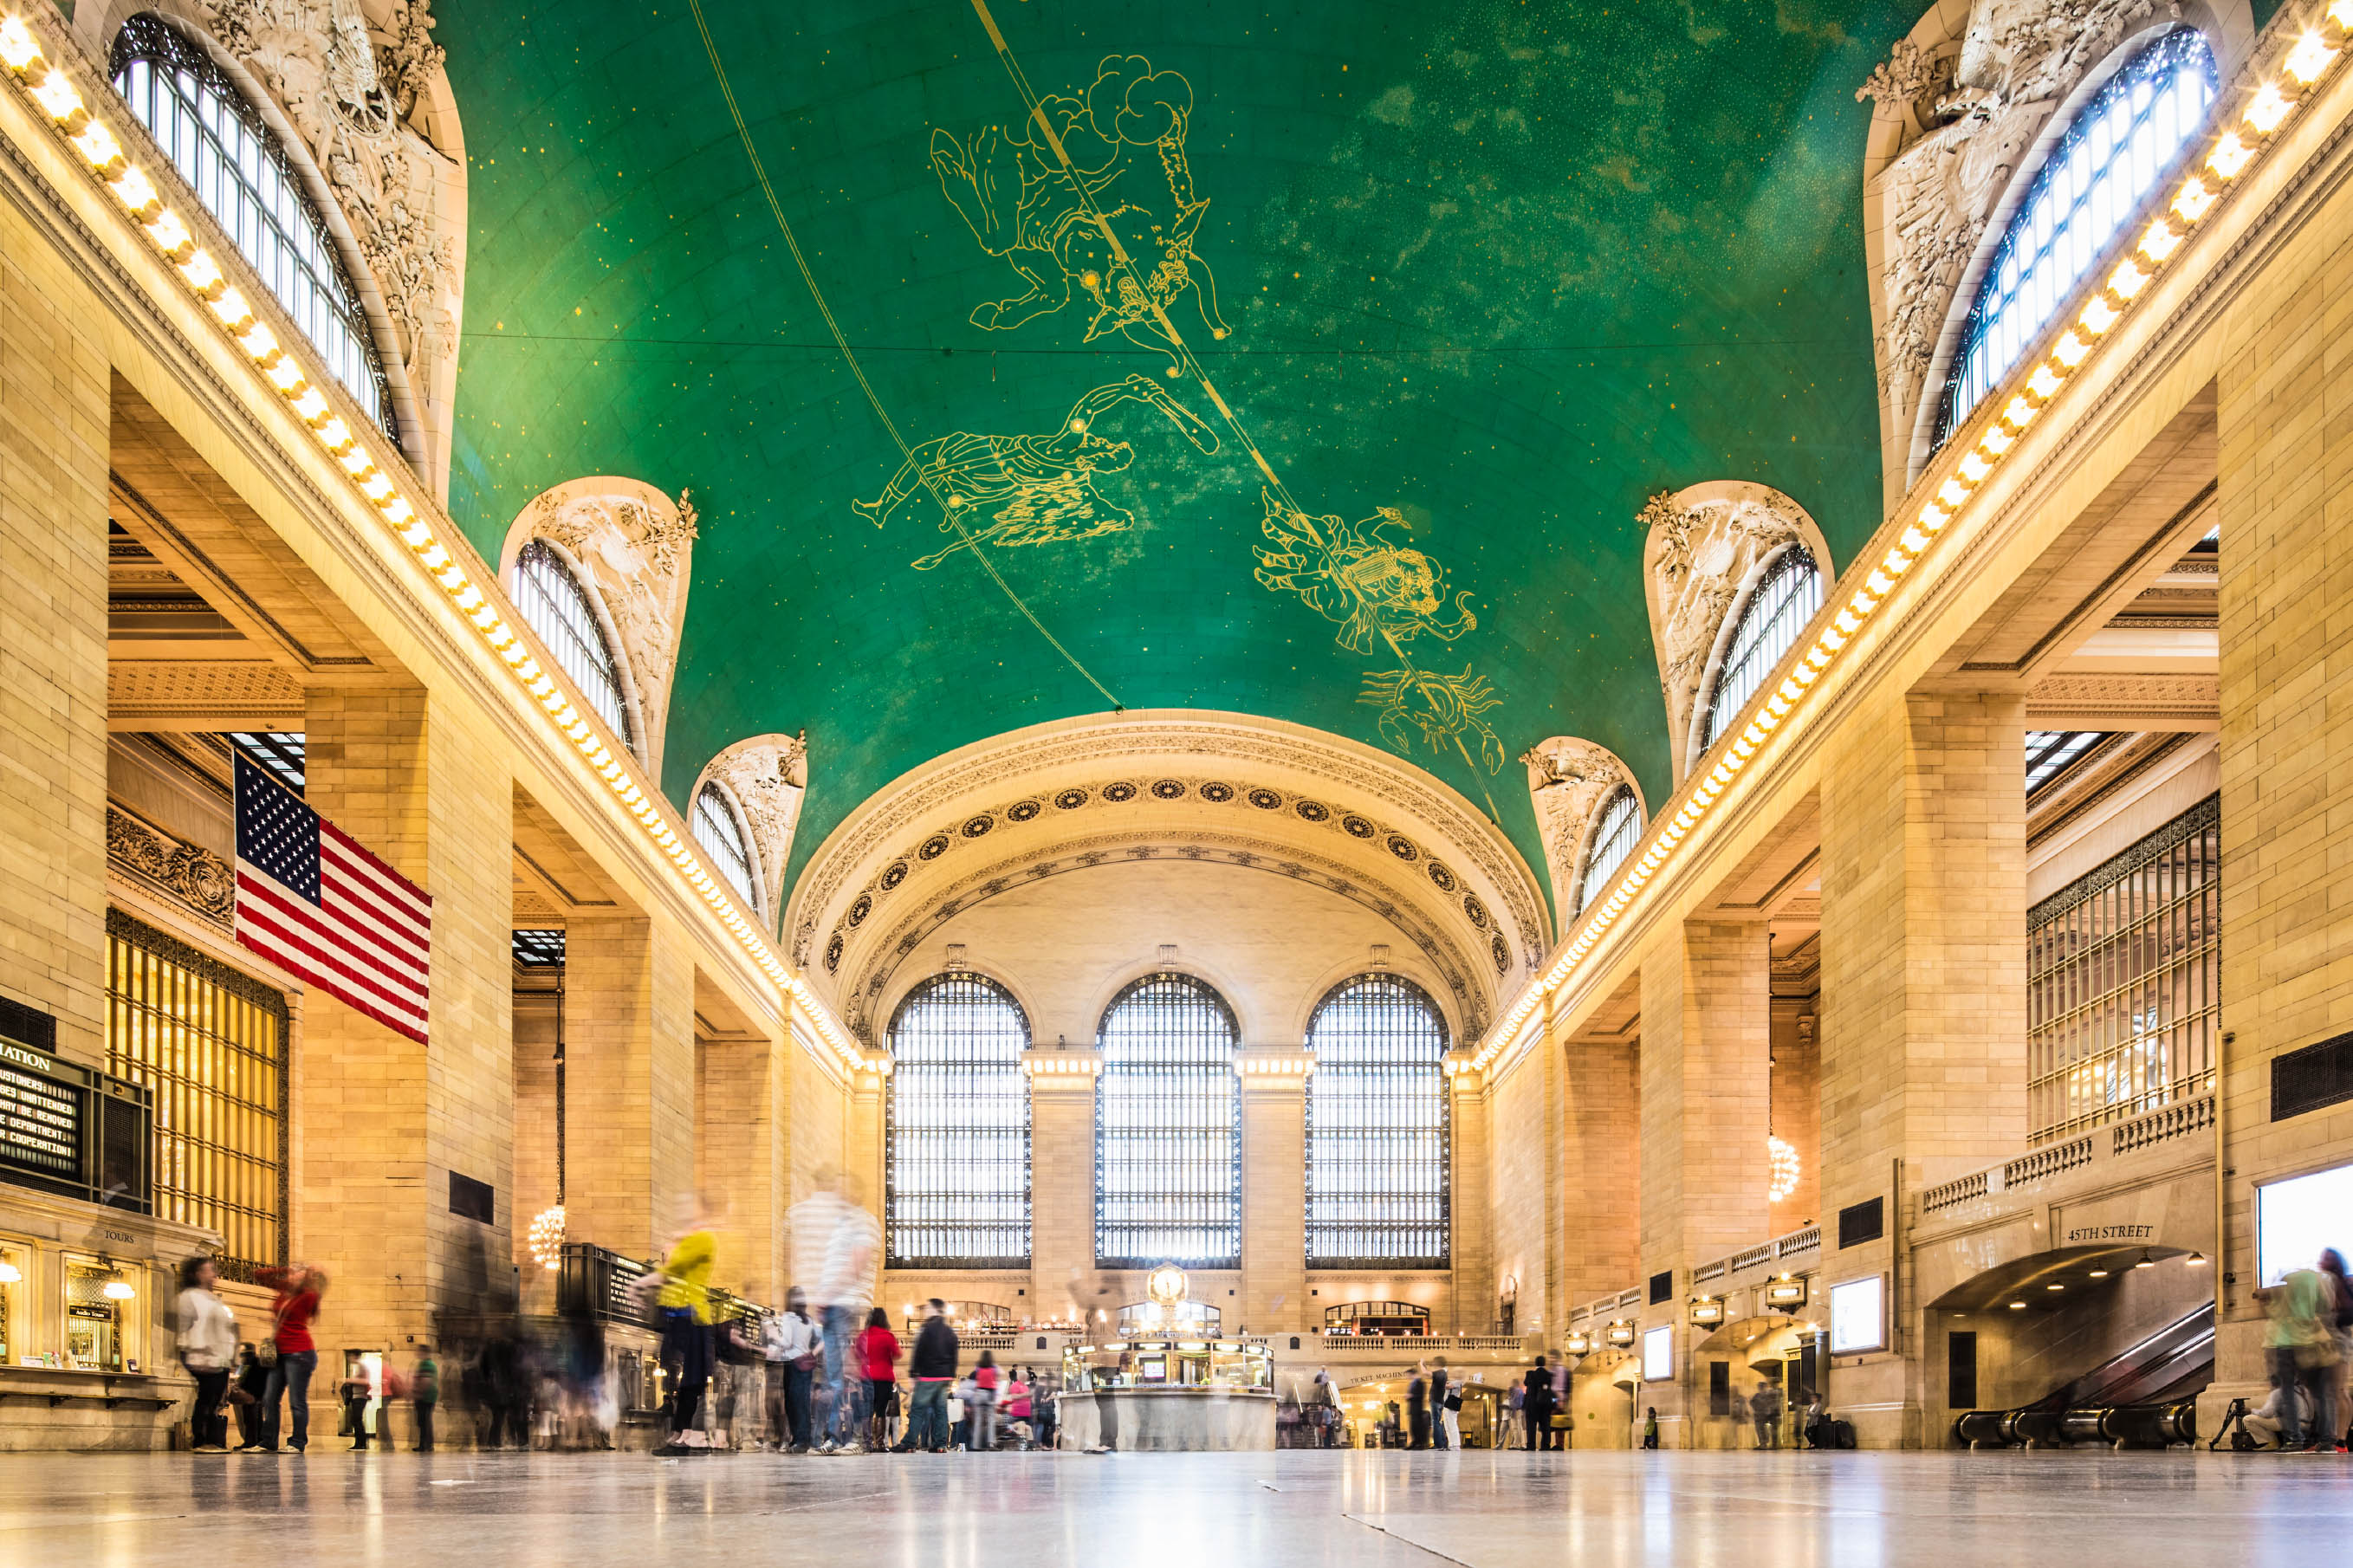 grand-central-station-new-york-istock_000020368660_large-2